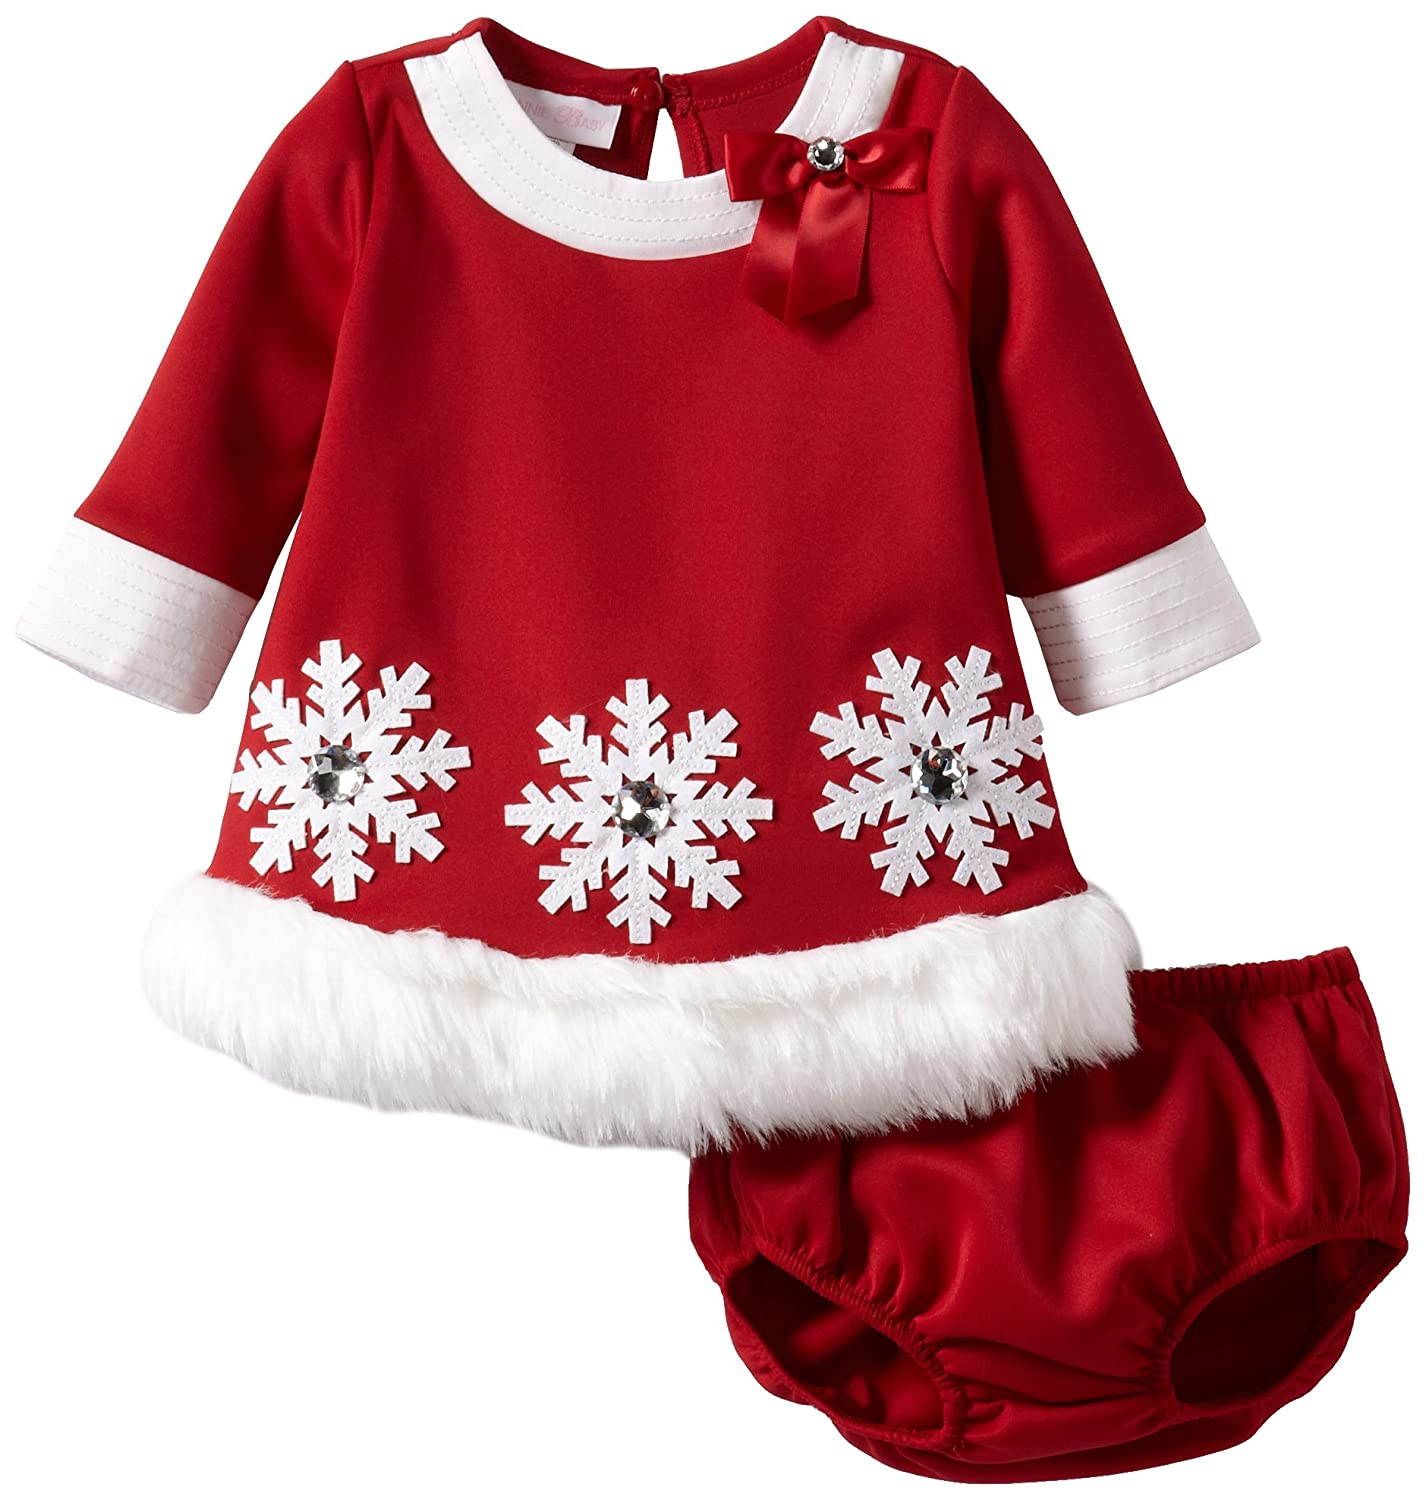 amazoncom bonnie baby girls newborn snowflake applique santa dress red 3 6 months infant and toddler special occasion dresses clothing